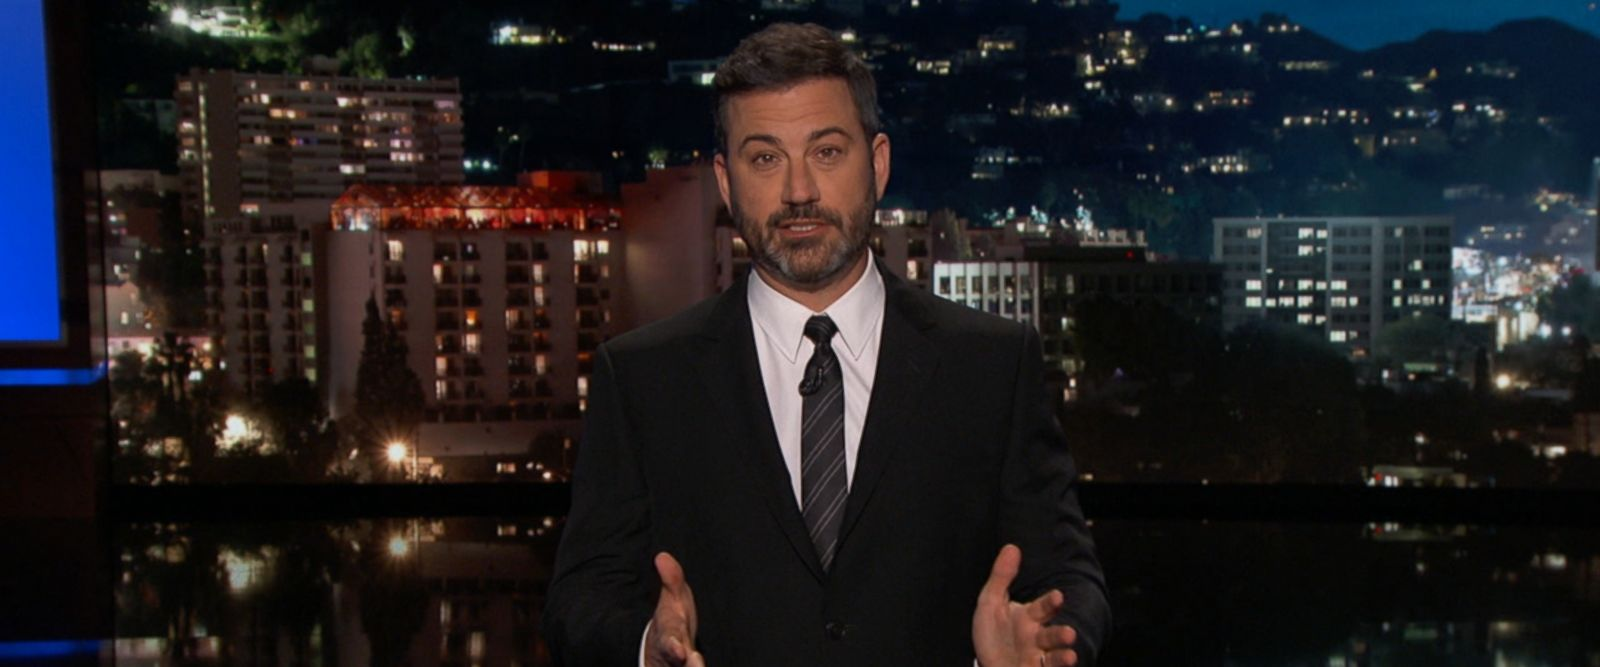 VIDEO: Jimmy Kimmel returned to the topic of health care reform during his monologue Monday night.